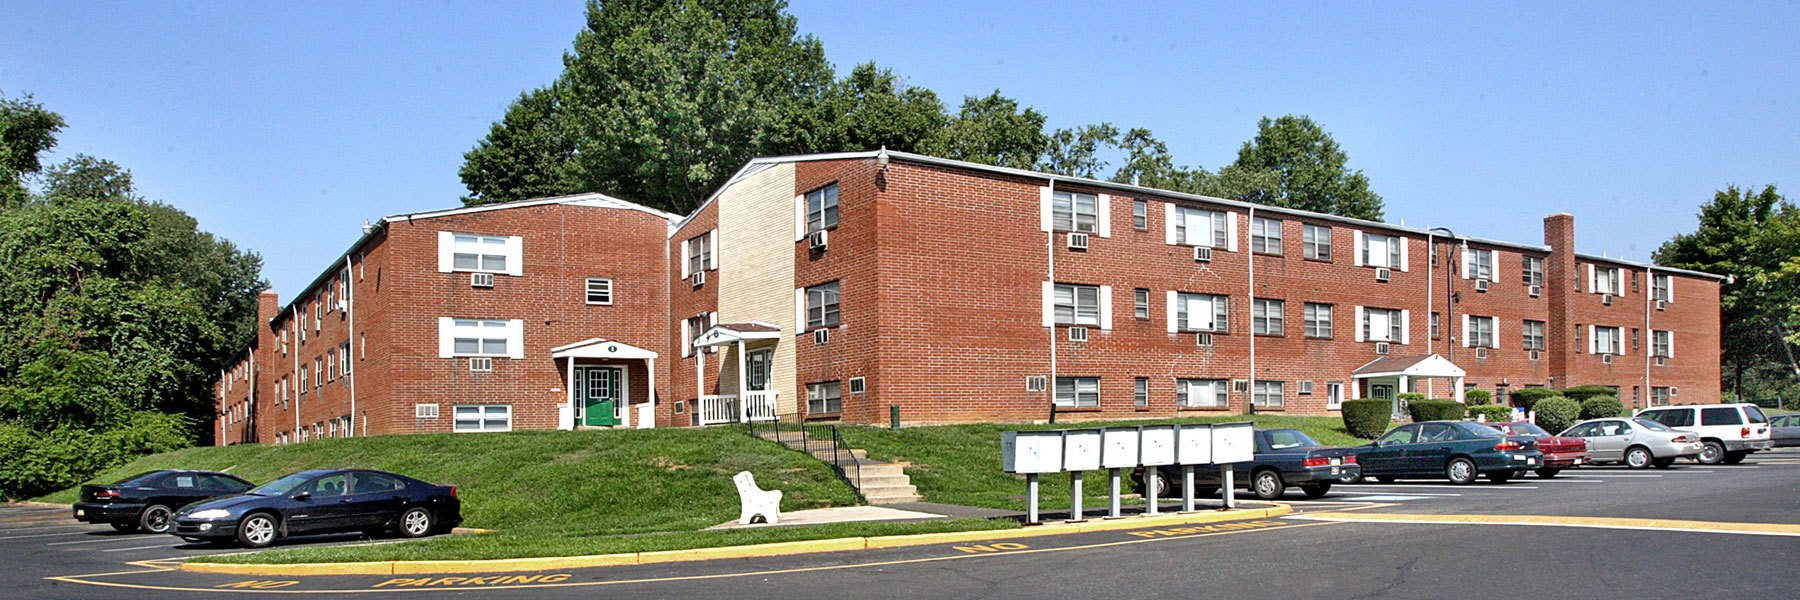 Dorilyn Terrace Apartments For Rent in Langhorne, PA Nearby